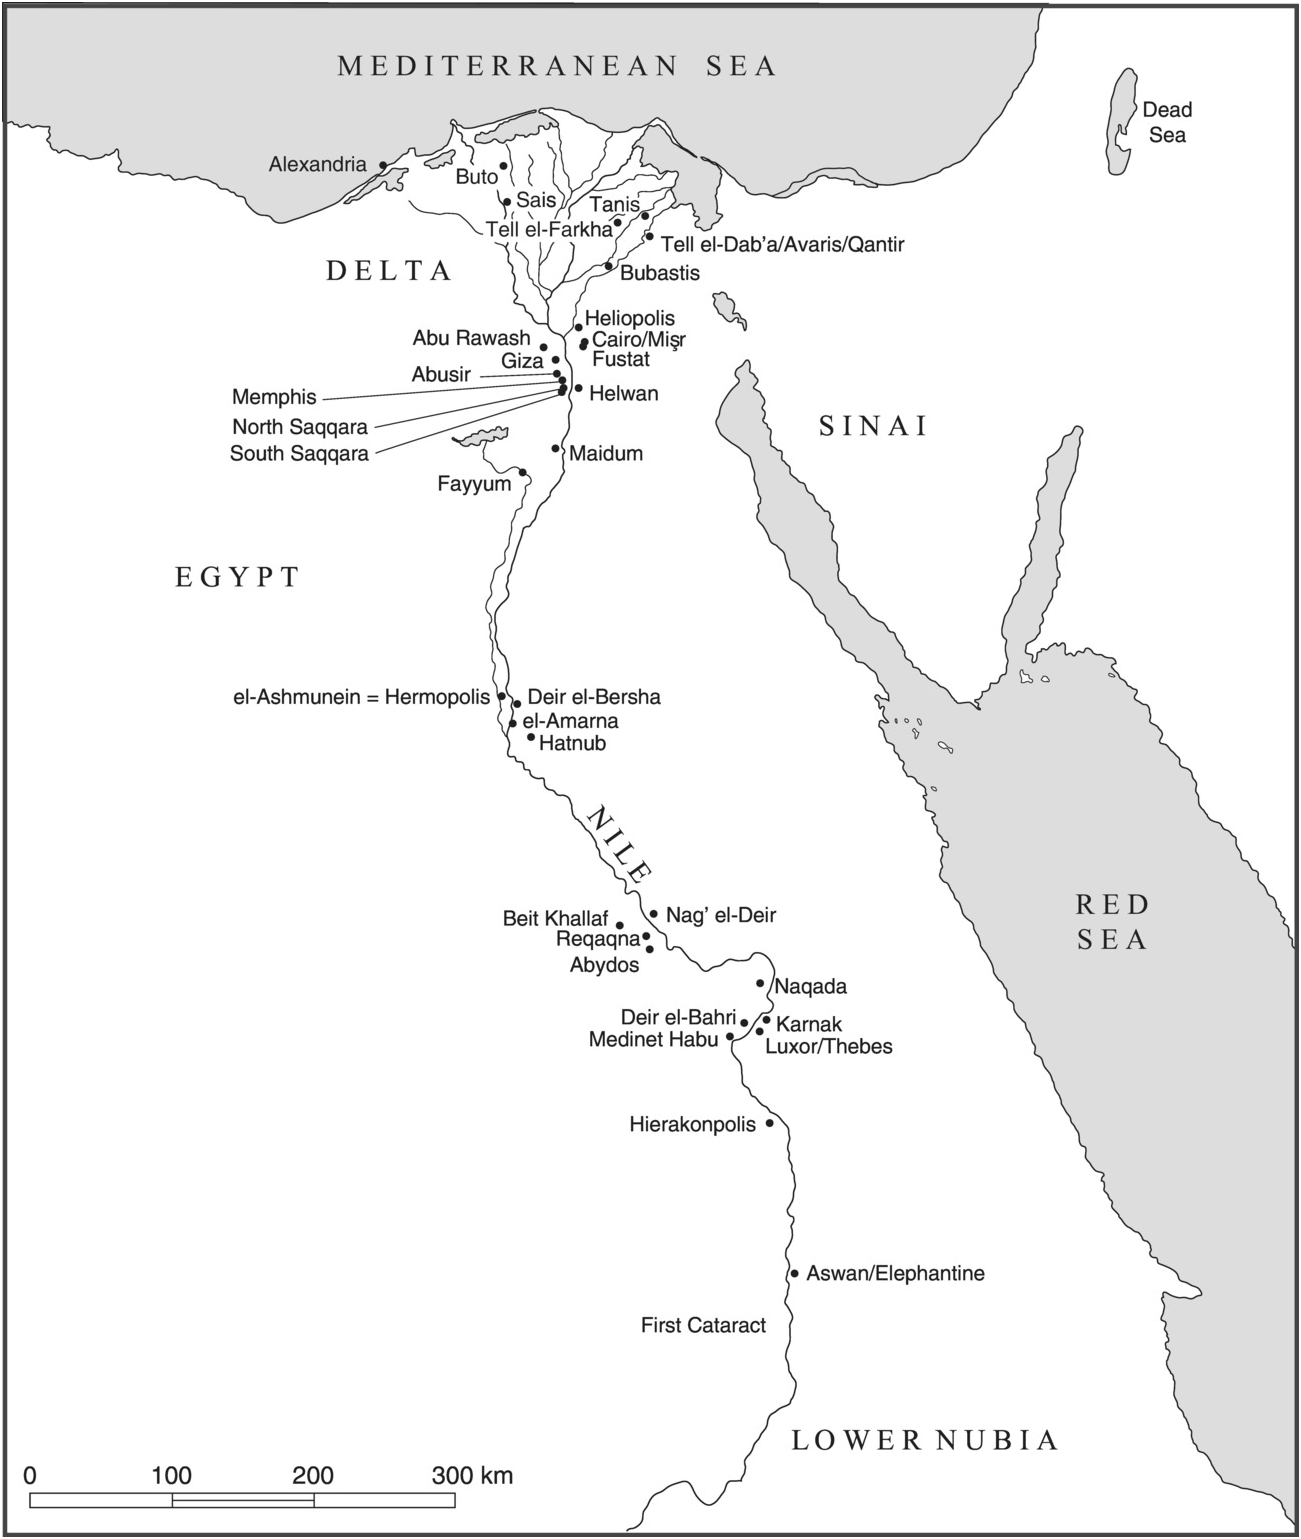 Ancient Egyptian cities: monumentality and performance